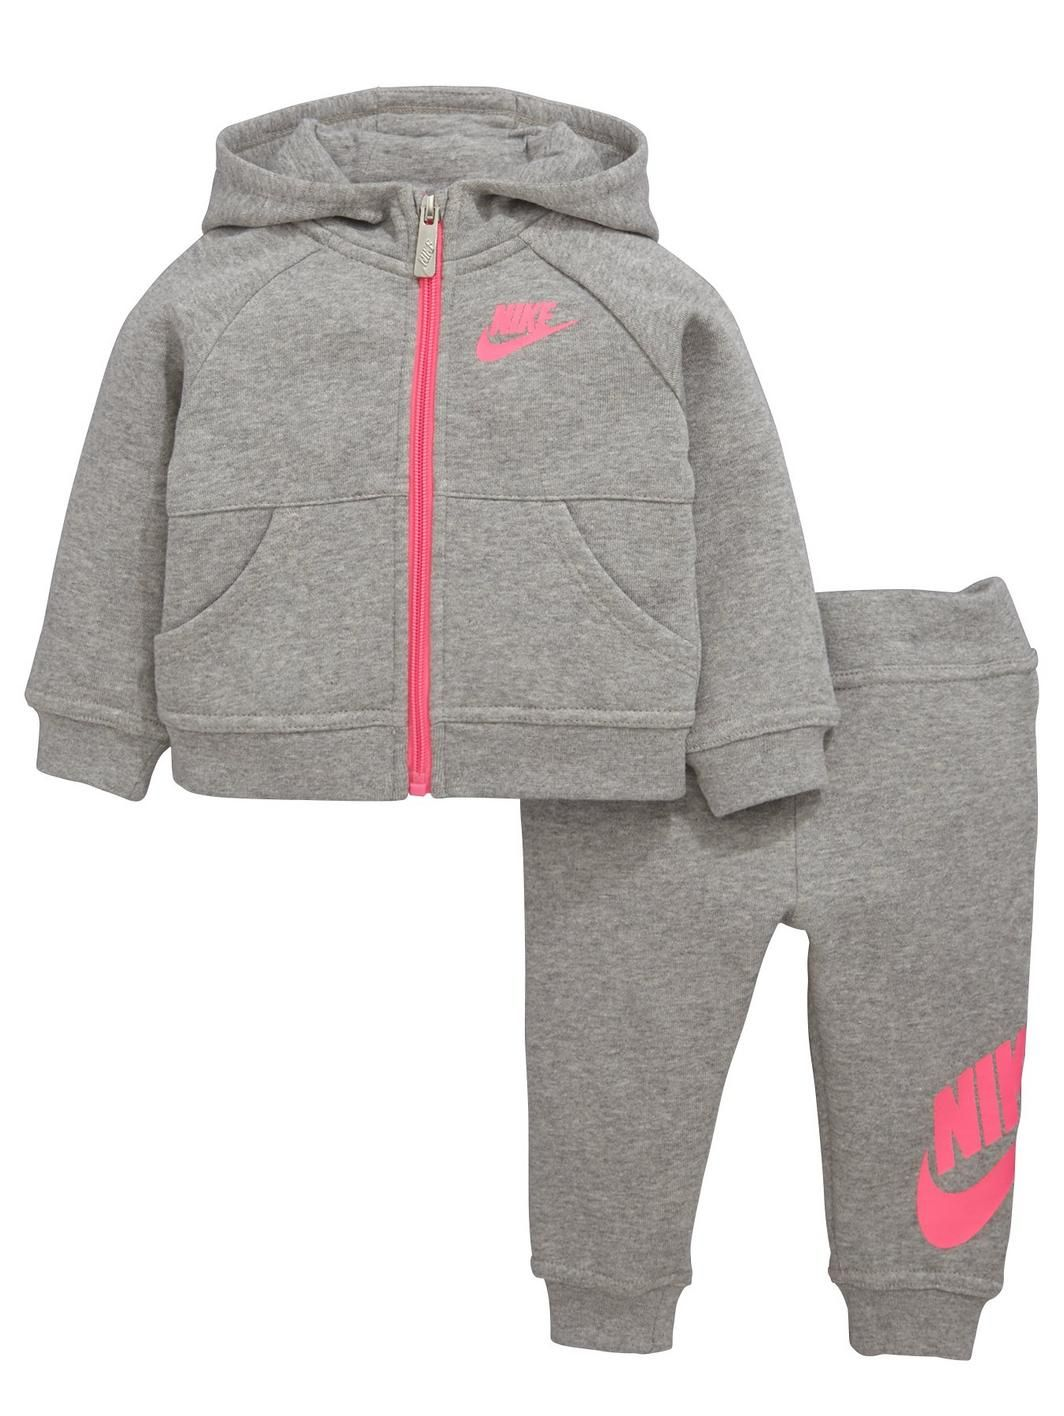 Nike Baby Girl Clothes Extraordinary Nike Store $19 On  Pinterest  Babies Girls And Babies Clothes Decorating Inspiration